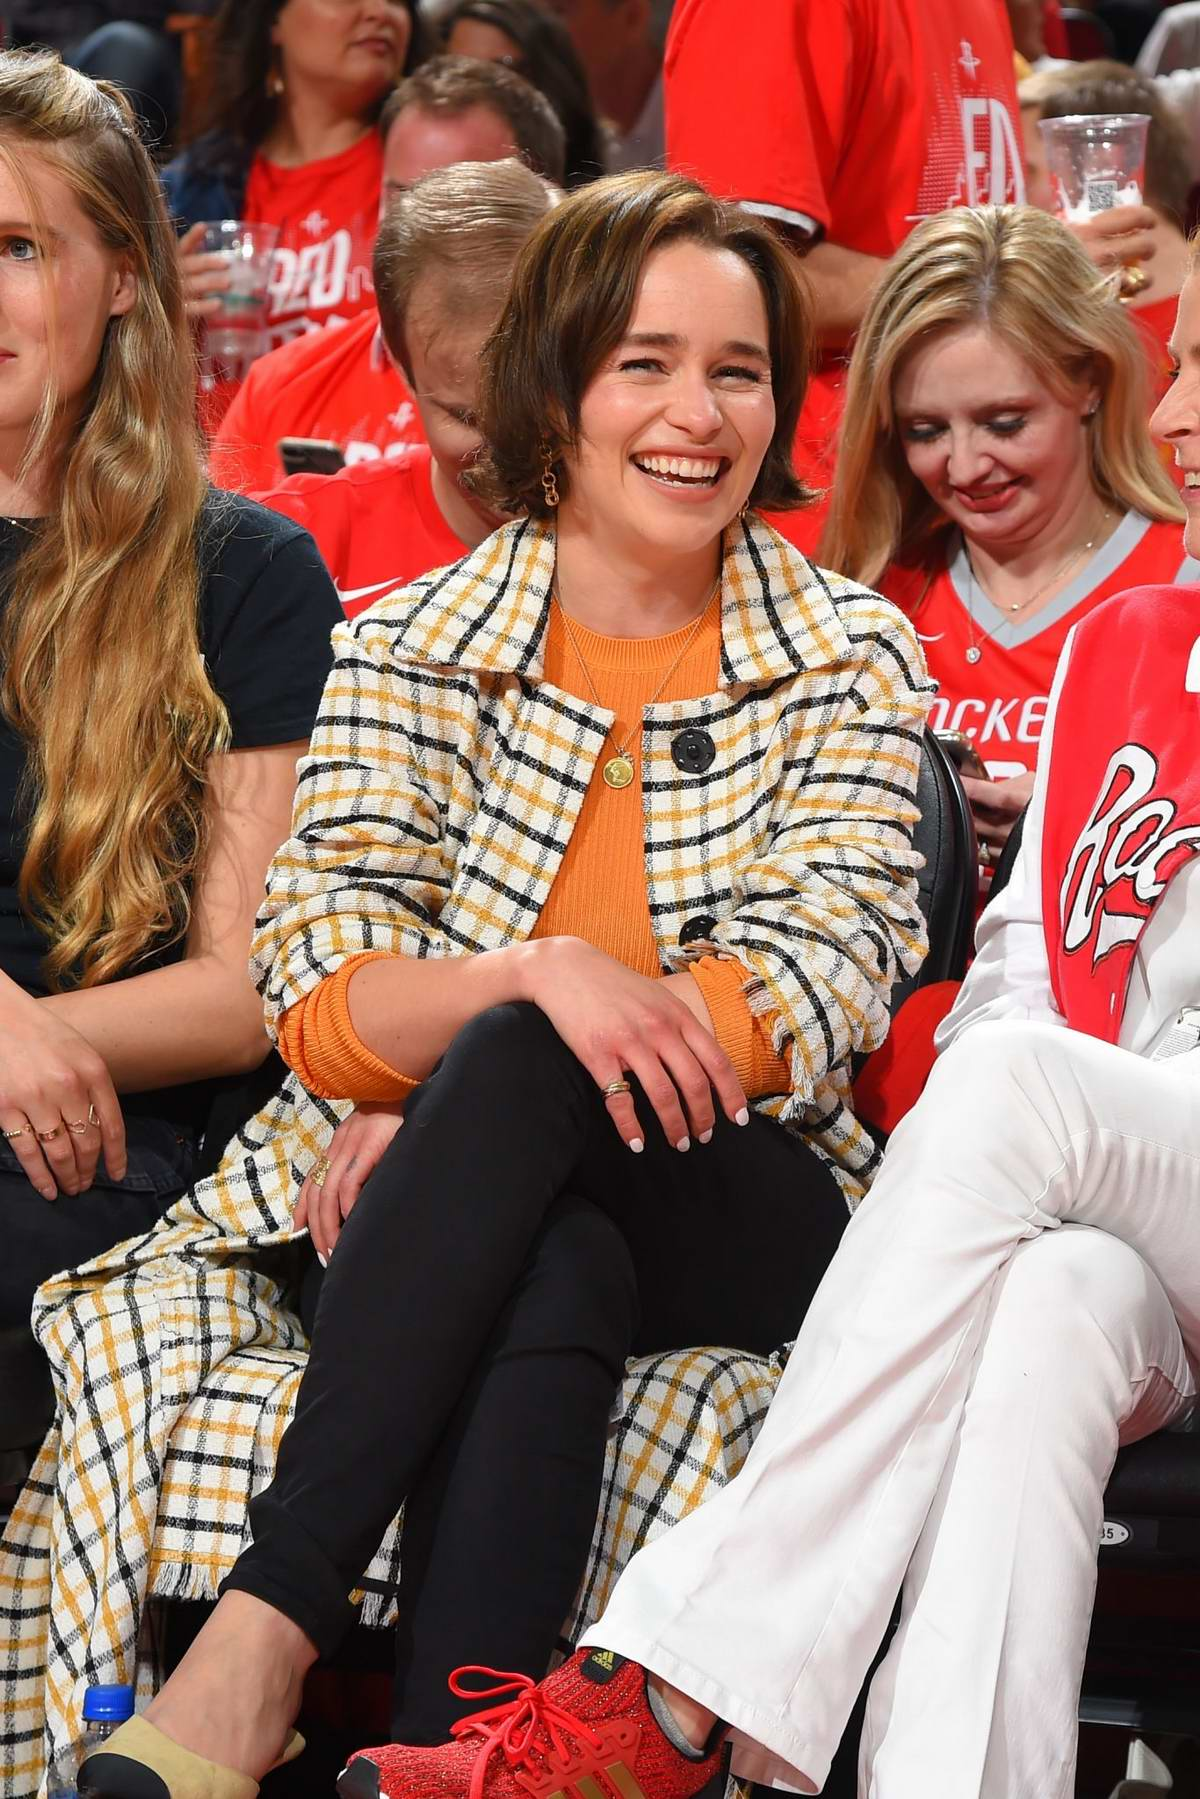 Emilia Clarke seen courtside at the Golden State Warriors v Houston Rockets game at Toyota Center in Houston, Texas